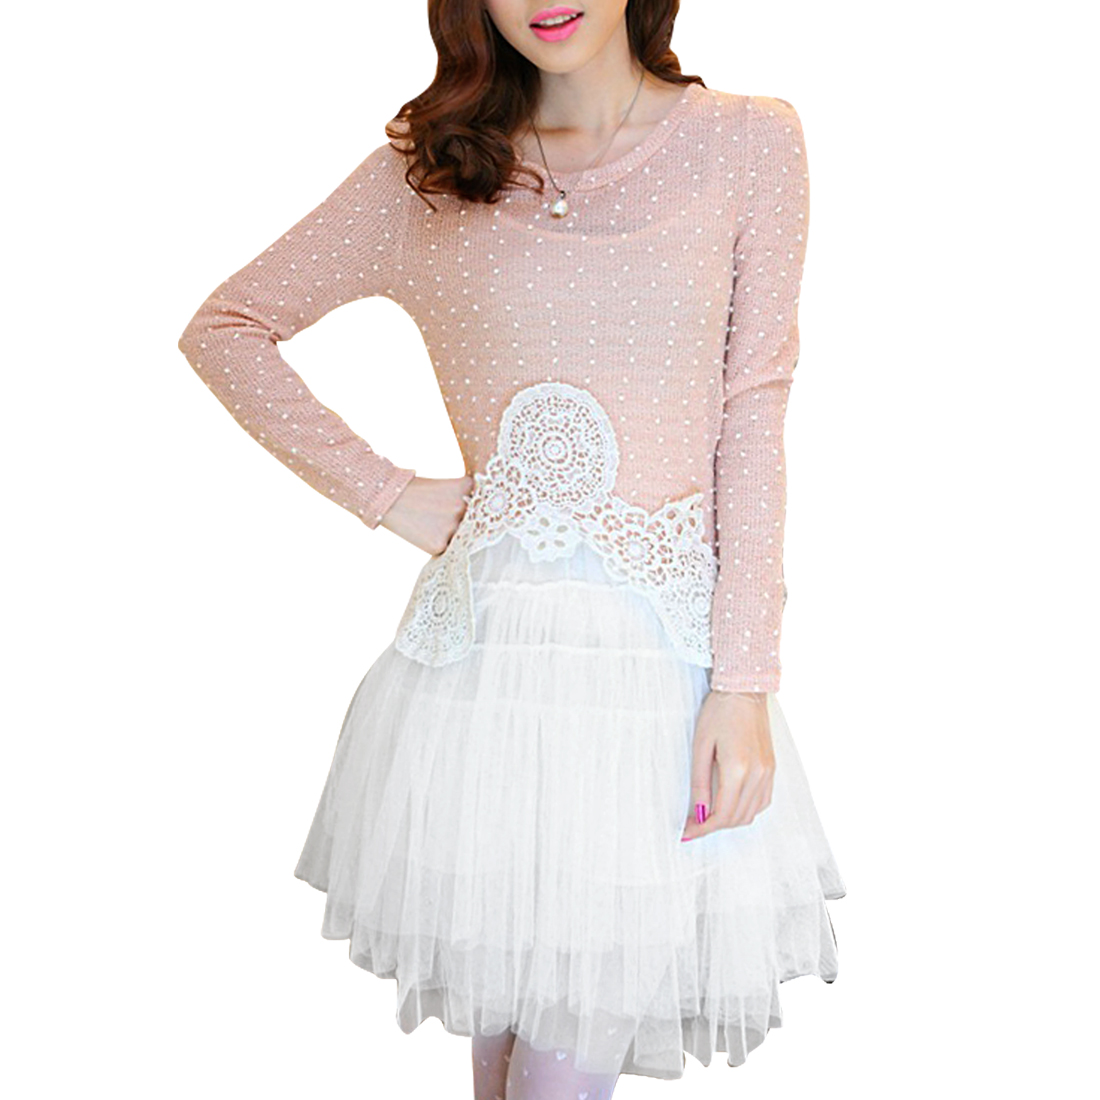 Woman's Pale Pink Dots Pattern Sweater w Tutu Dress Two Piece Set XS